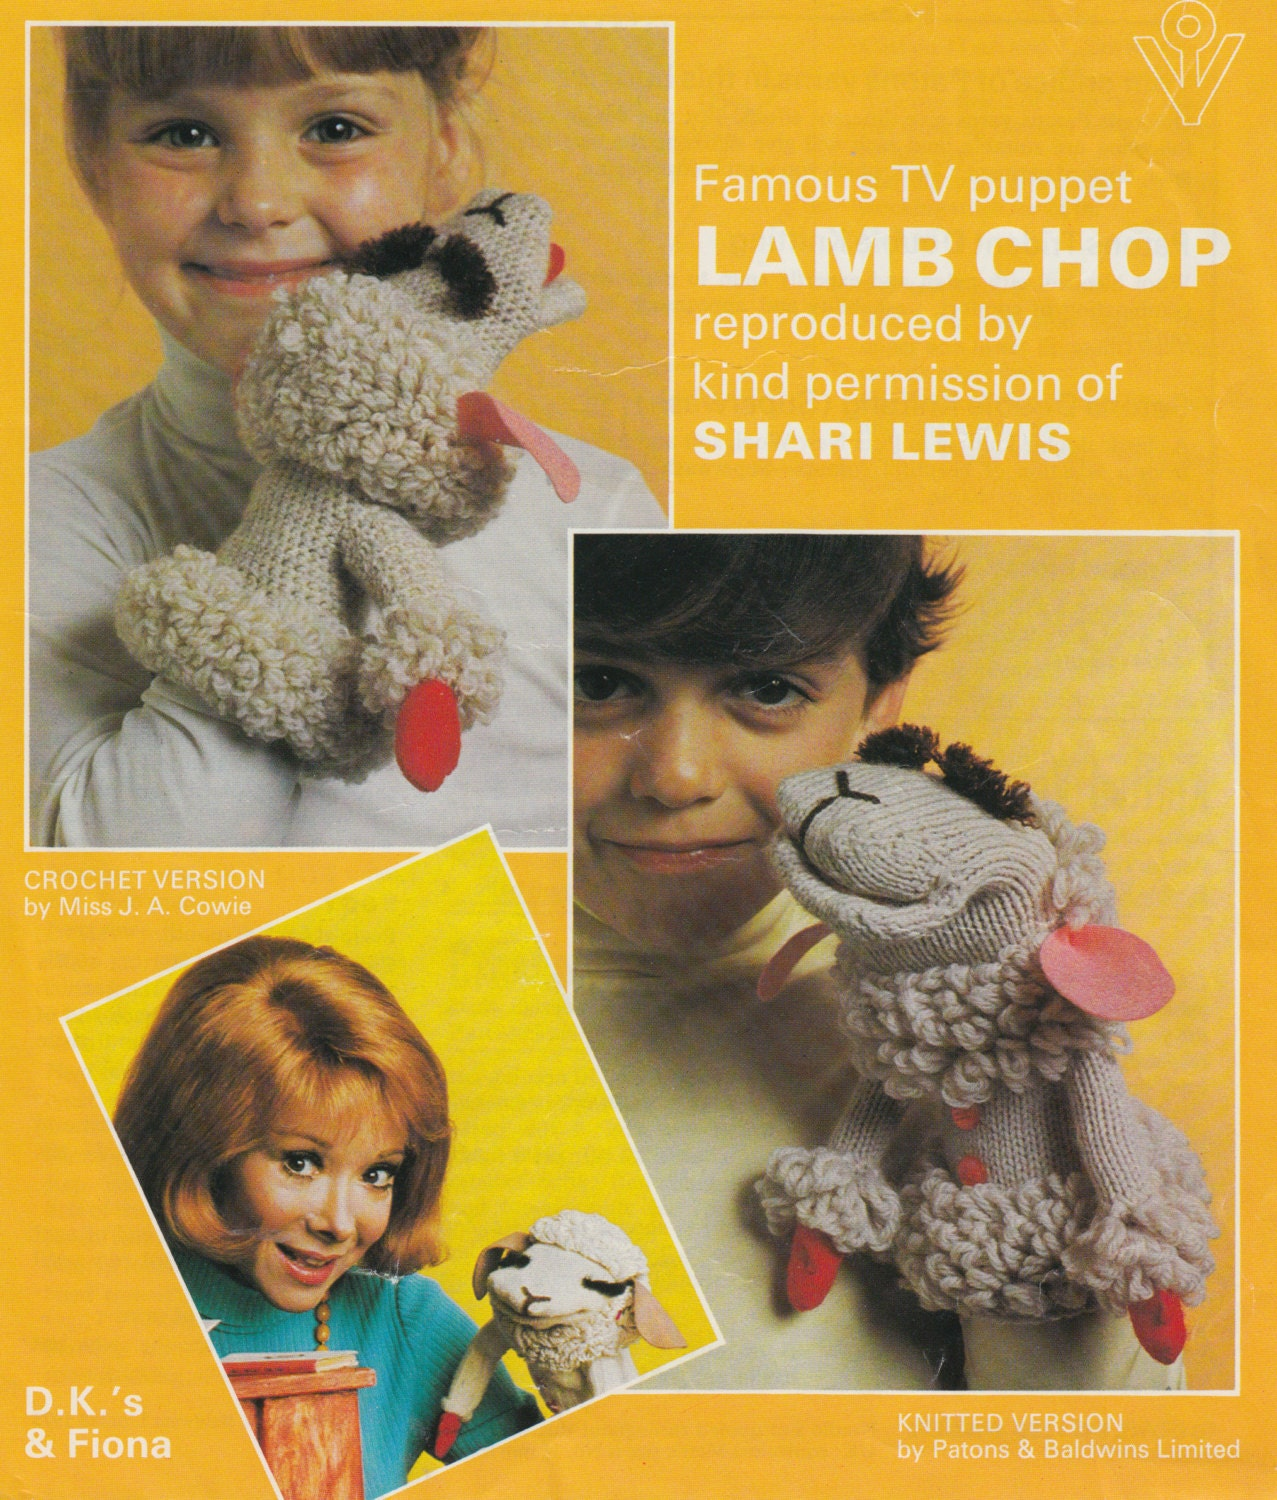 vintage toy knit and crochet pattern lamb chop hand puppet